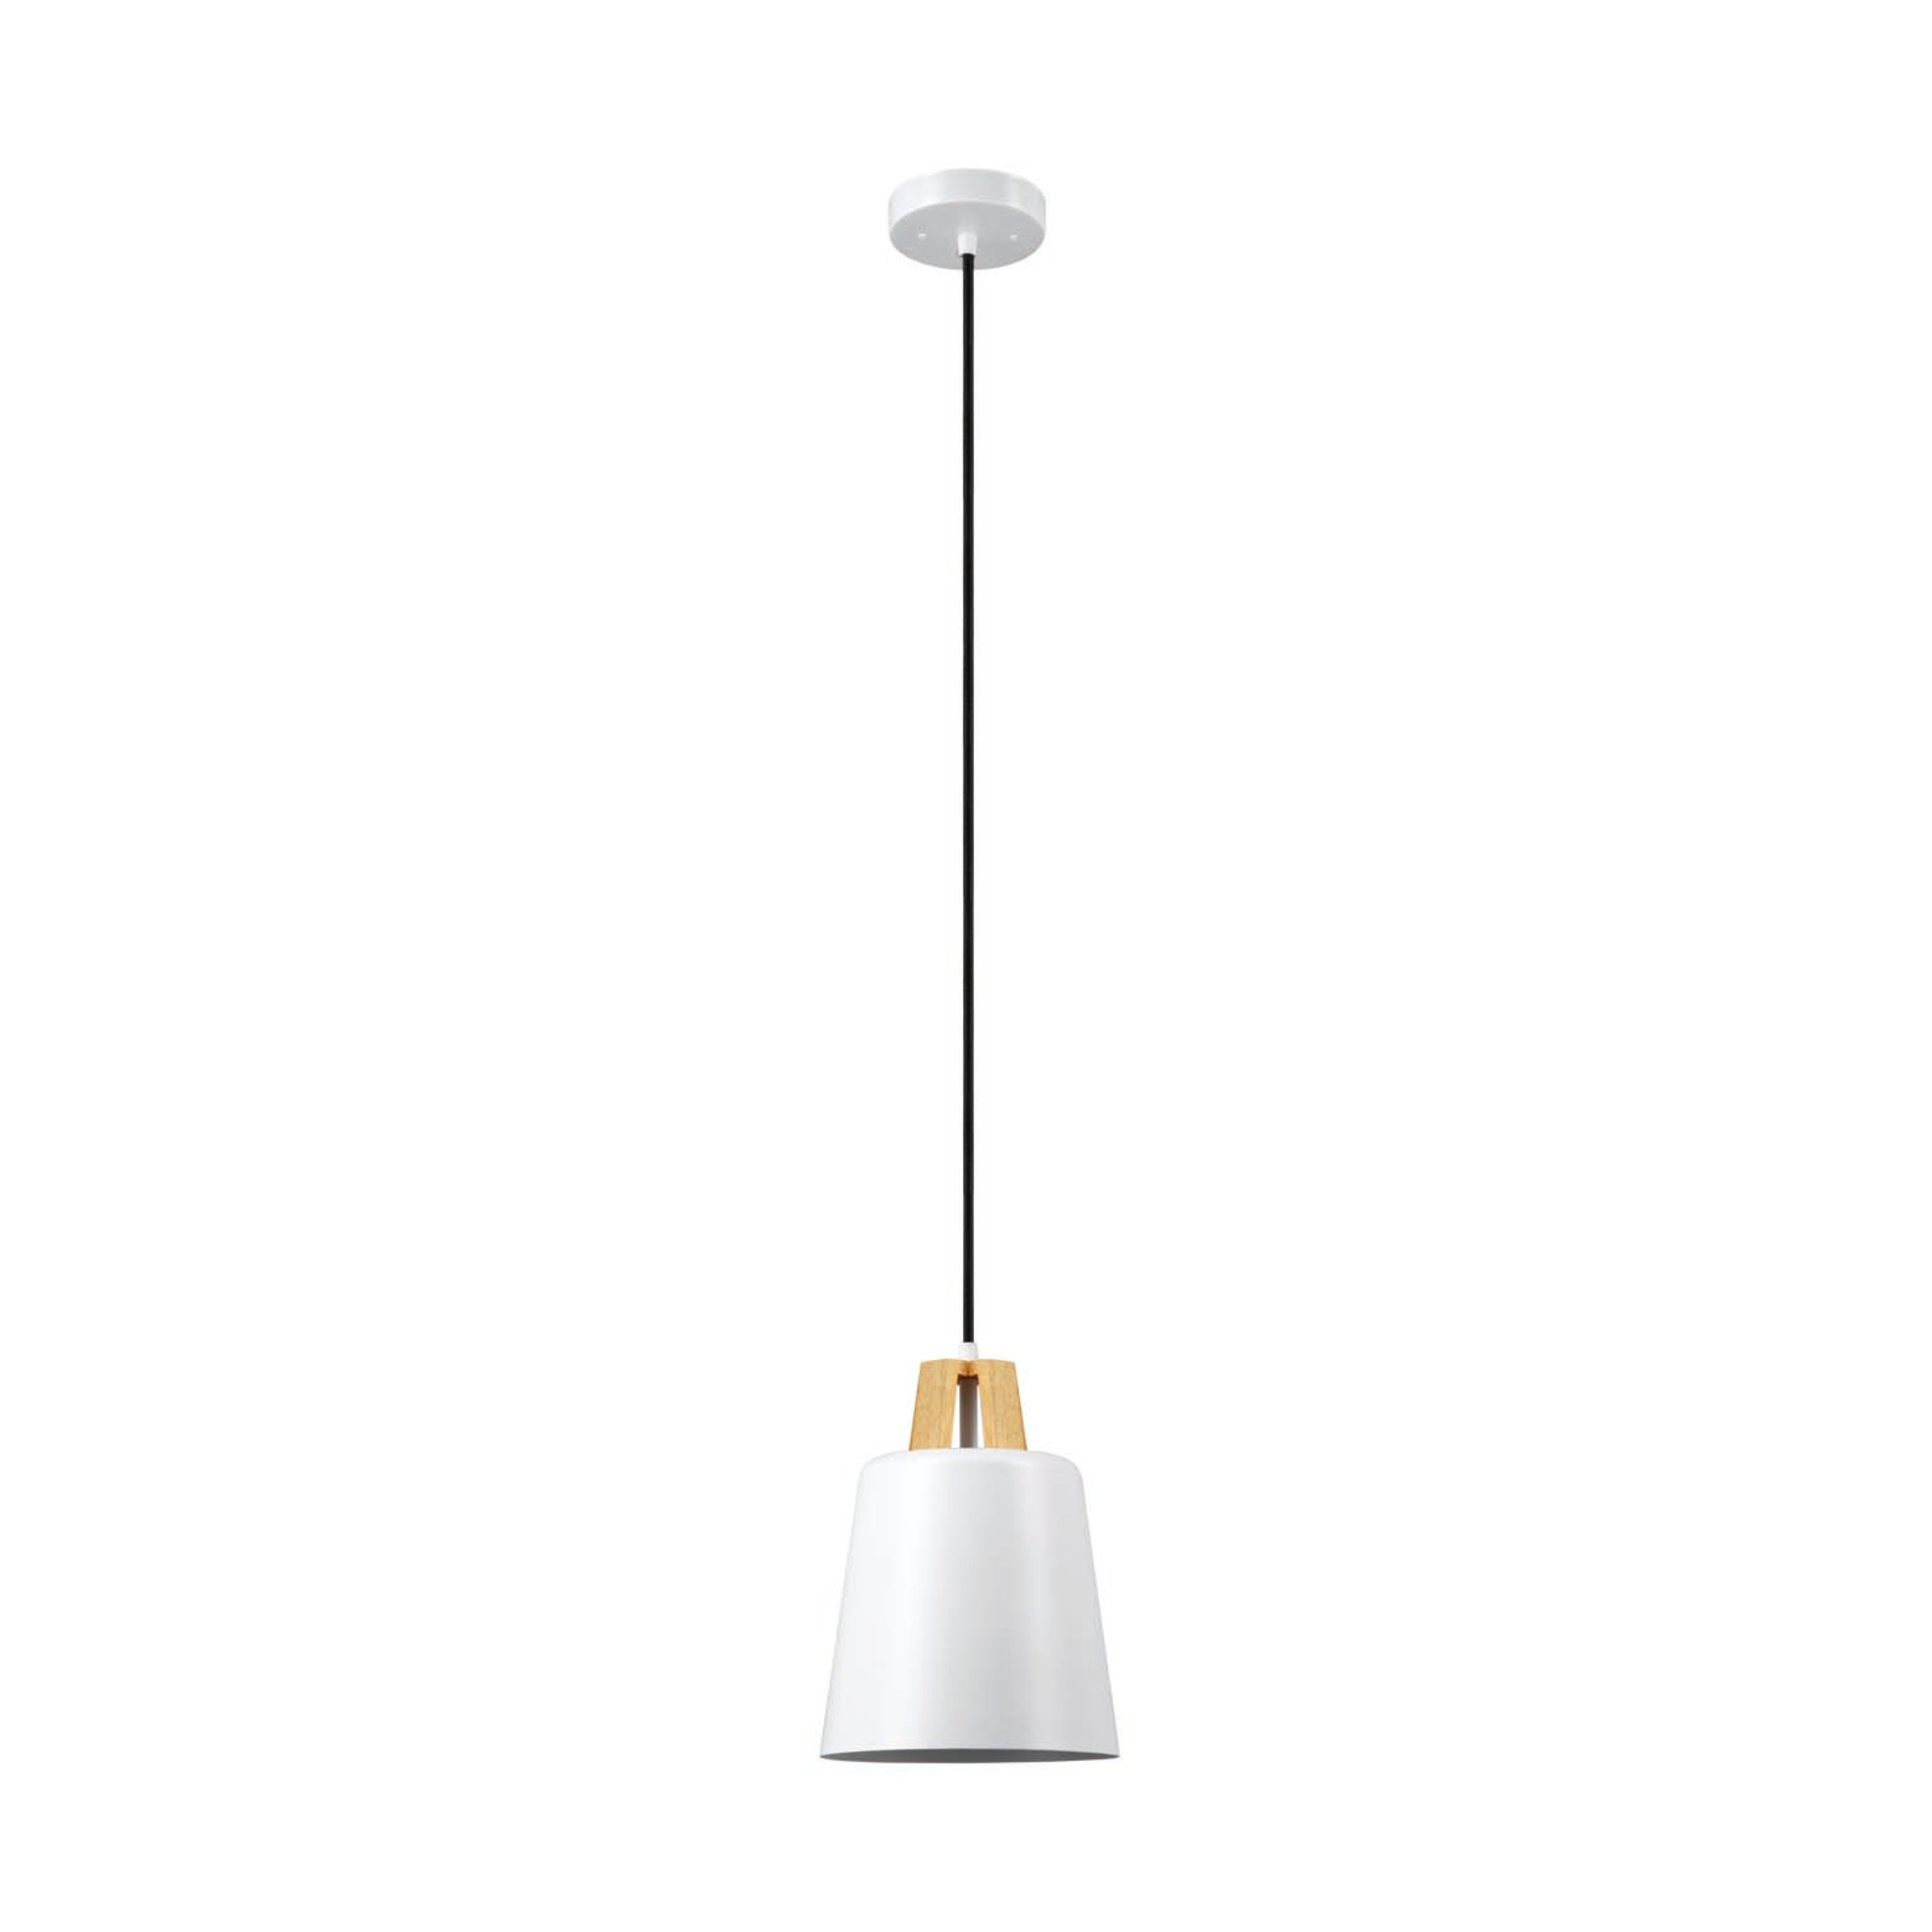 Globe Electric Jeor 1-Light Pendant, White Finish, Faux Wood Accent, 65431 by Globe Electric (Image #1)